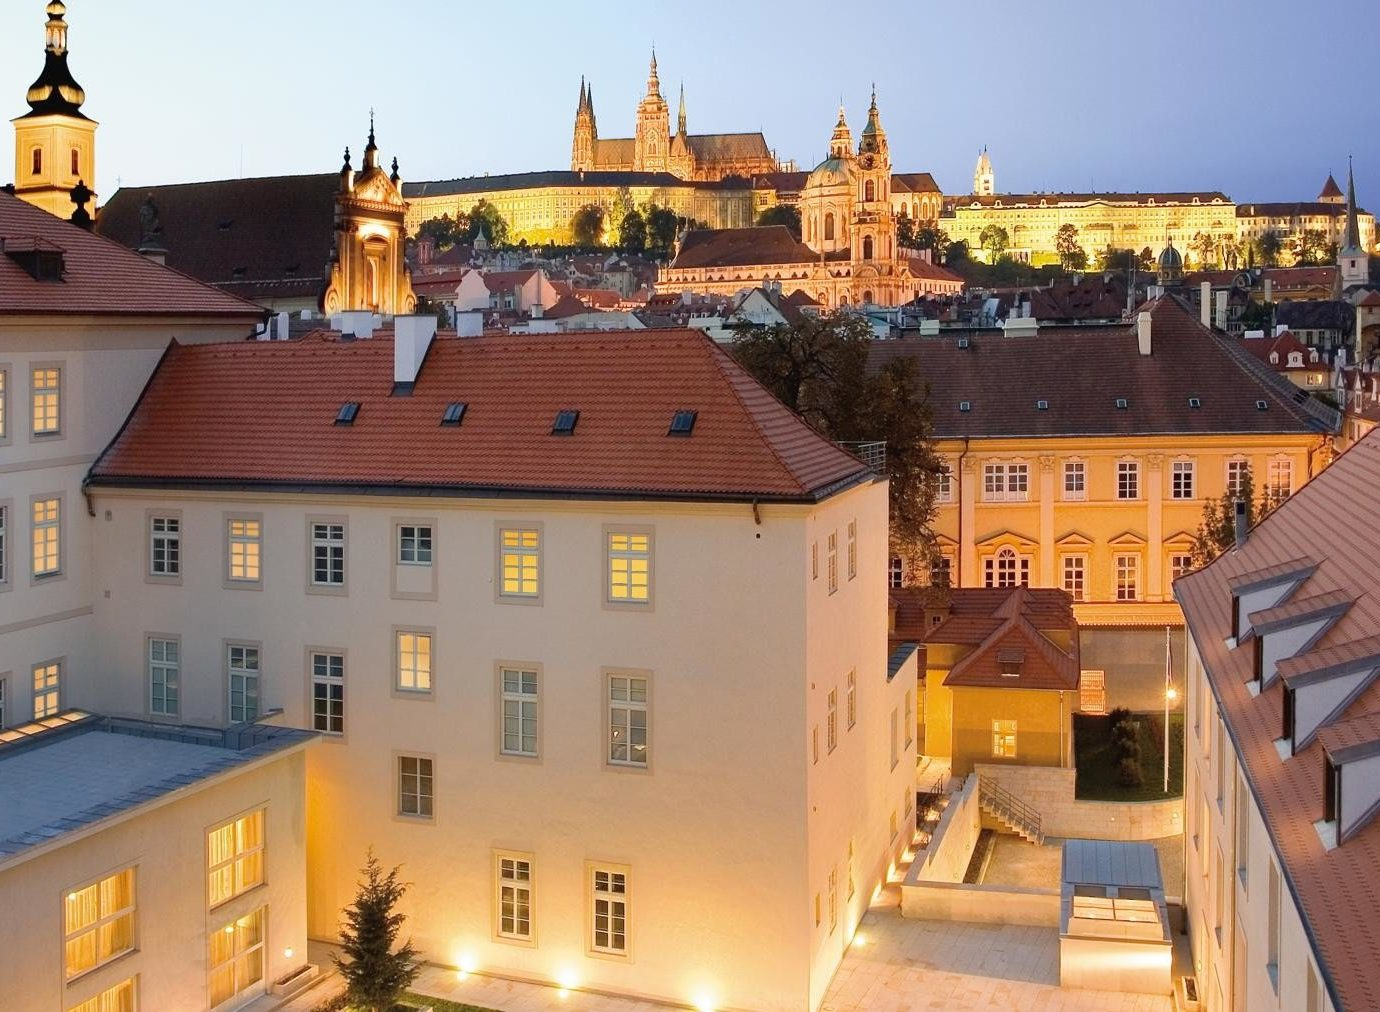 europe Hotels Prague Town landmark City historic site château building evening roof medieval architecture sky tourist attraction plaza facade town square tourism estate window cityscape palace